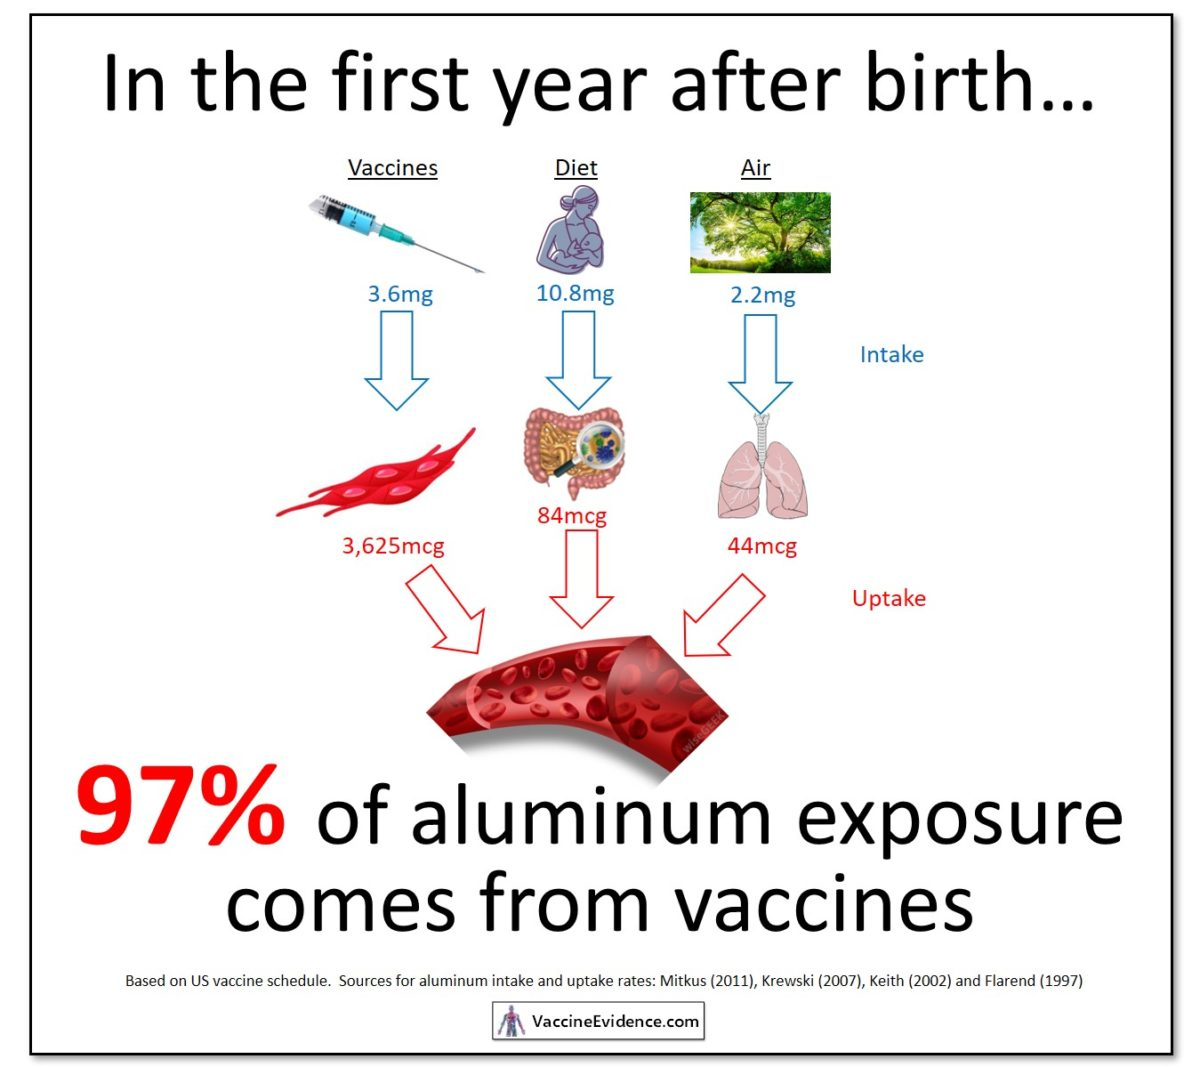 Aluminum from Vaccines and Diet